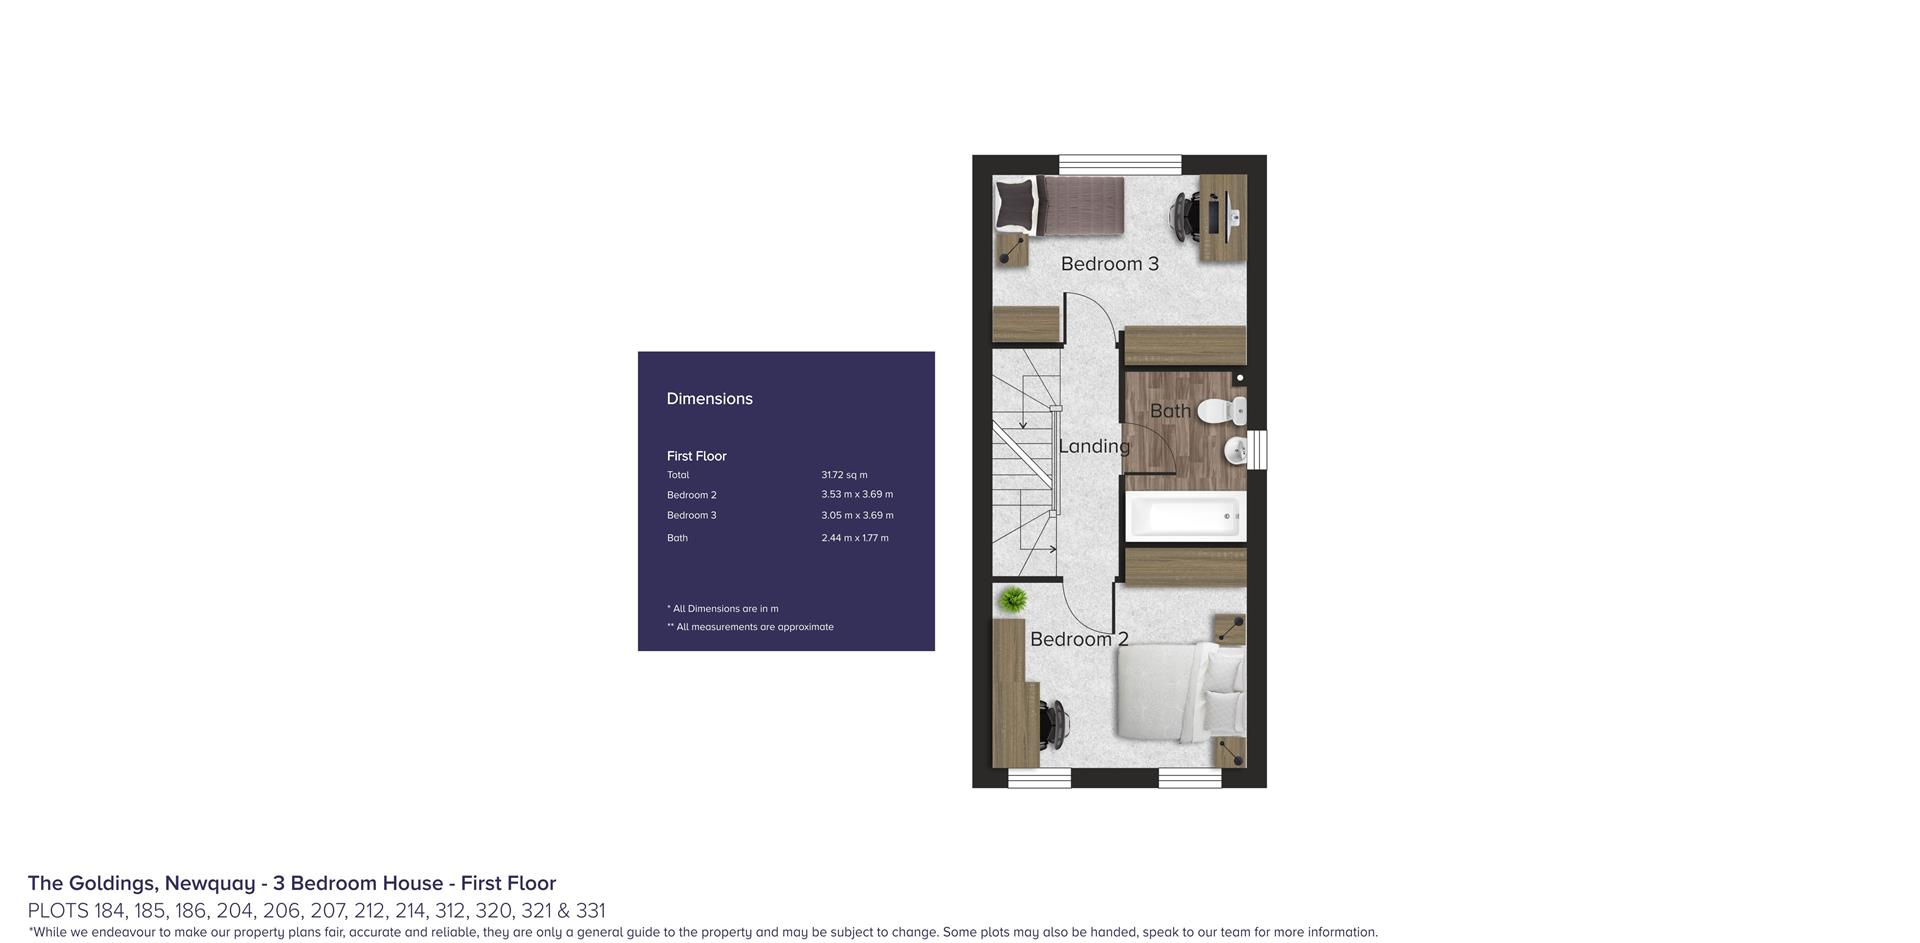 The Goldings, Newquay_Plots 184, 185, 186, 204, 20